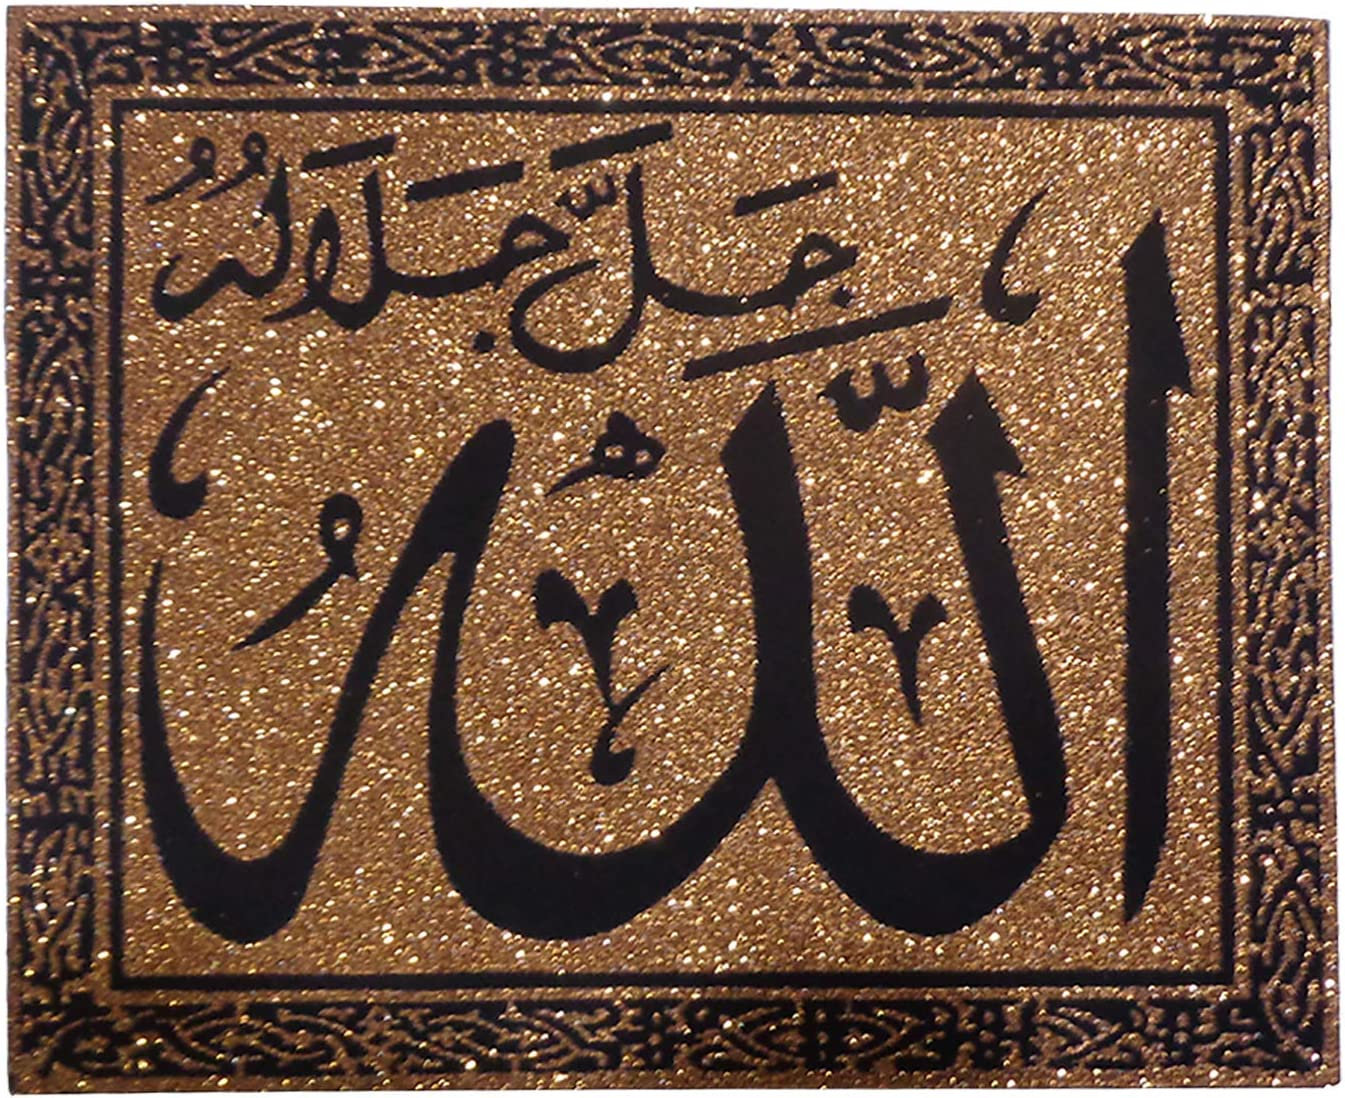 100% Egyptian Wooden Engraved Framed with Shiny Glitter Islamic Islam Arabic Quran Koran Wall Hanging Frame Mosque Home Decor Surah Allah 8